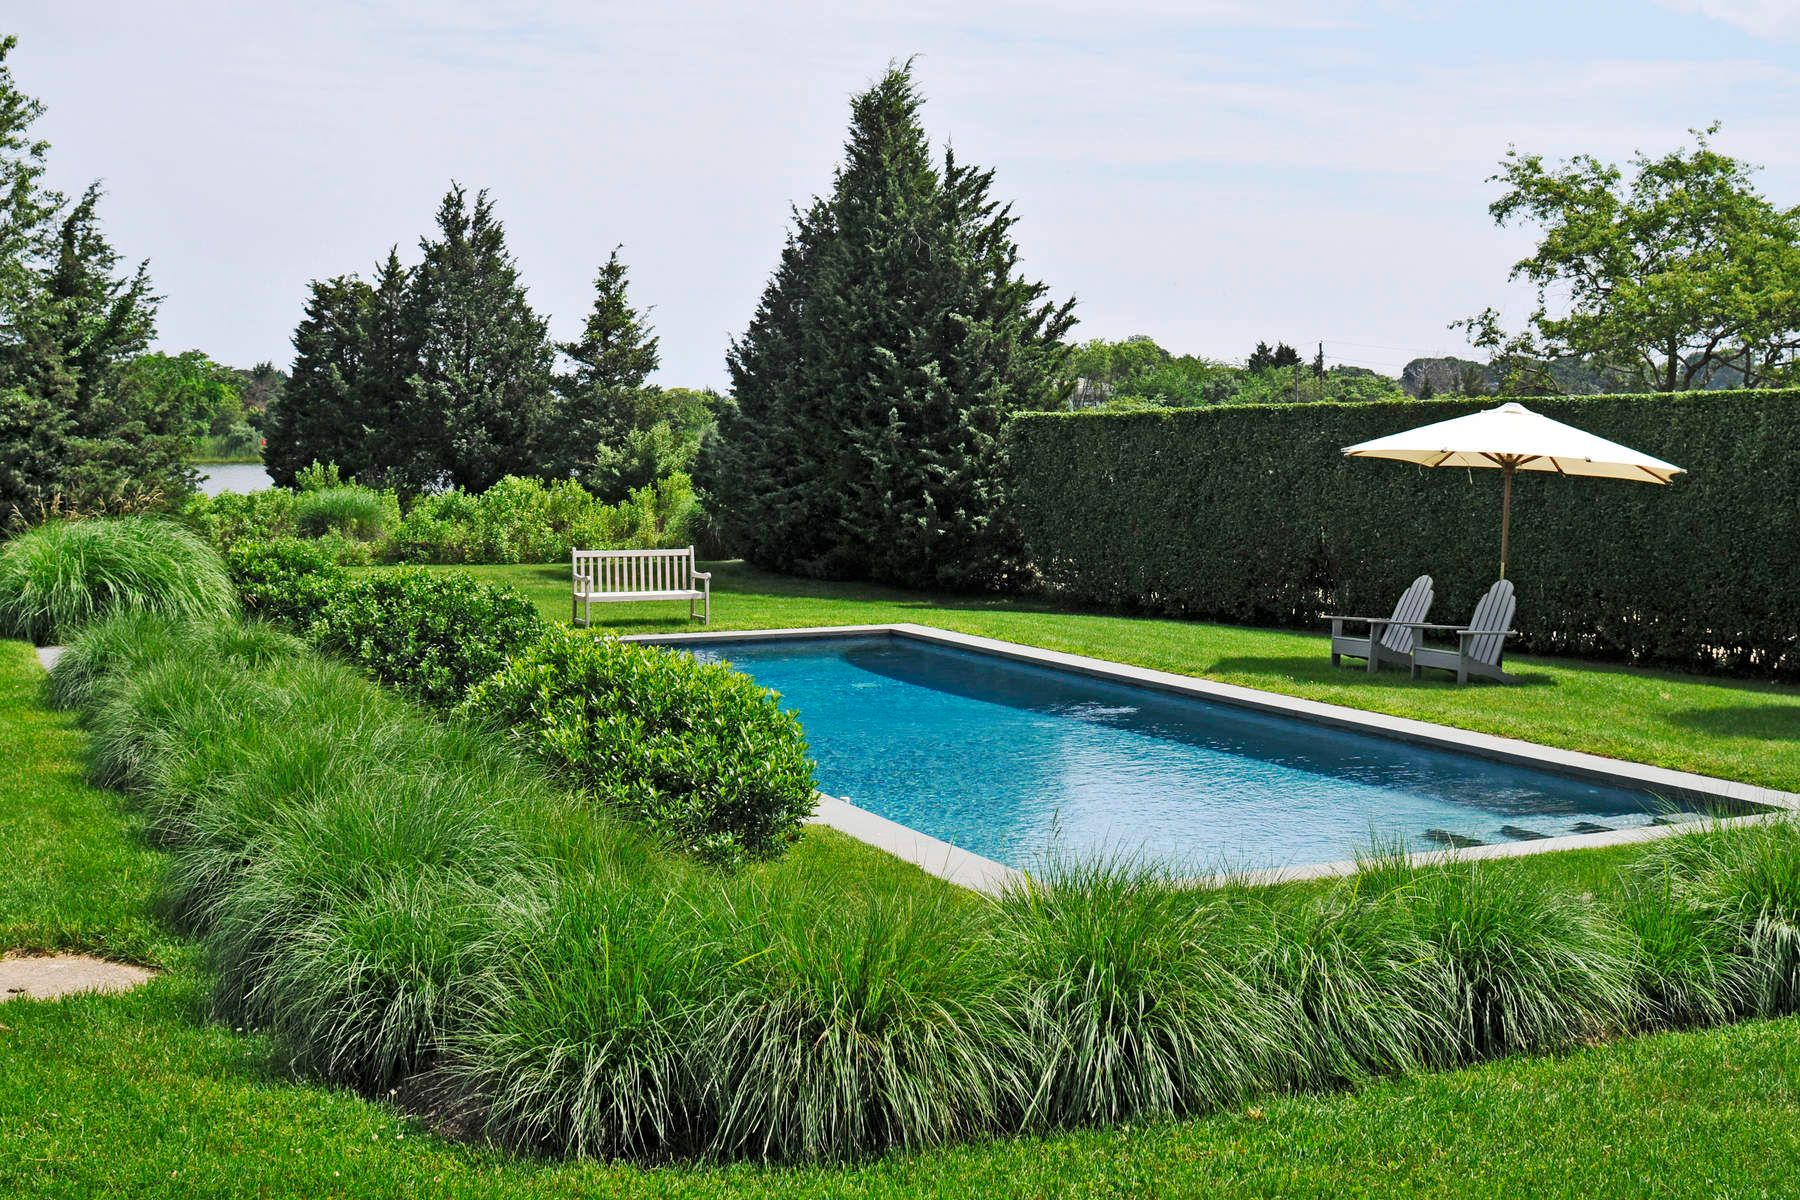 Additional photo for property listing at Sag Harbor Waterfront With Pool 4405 Noyac Road Sag Harbor, New York 11963 United States